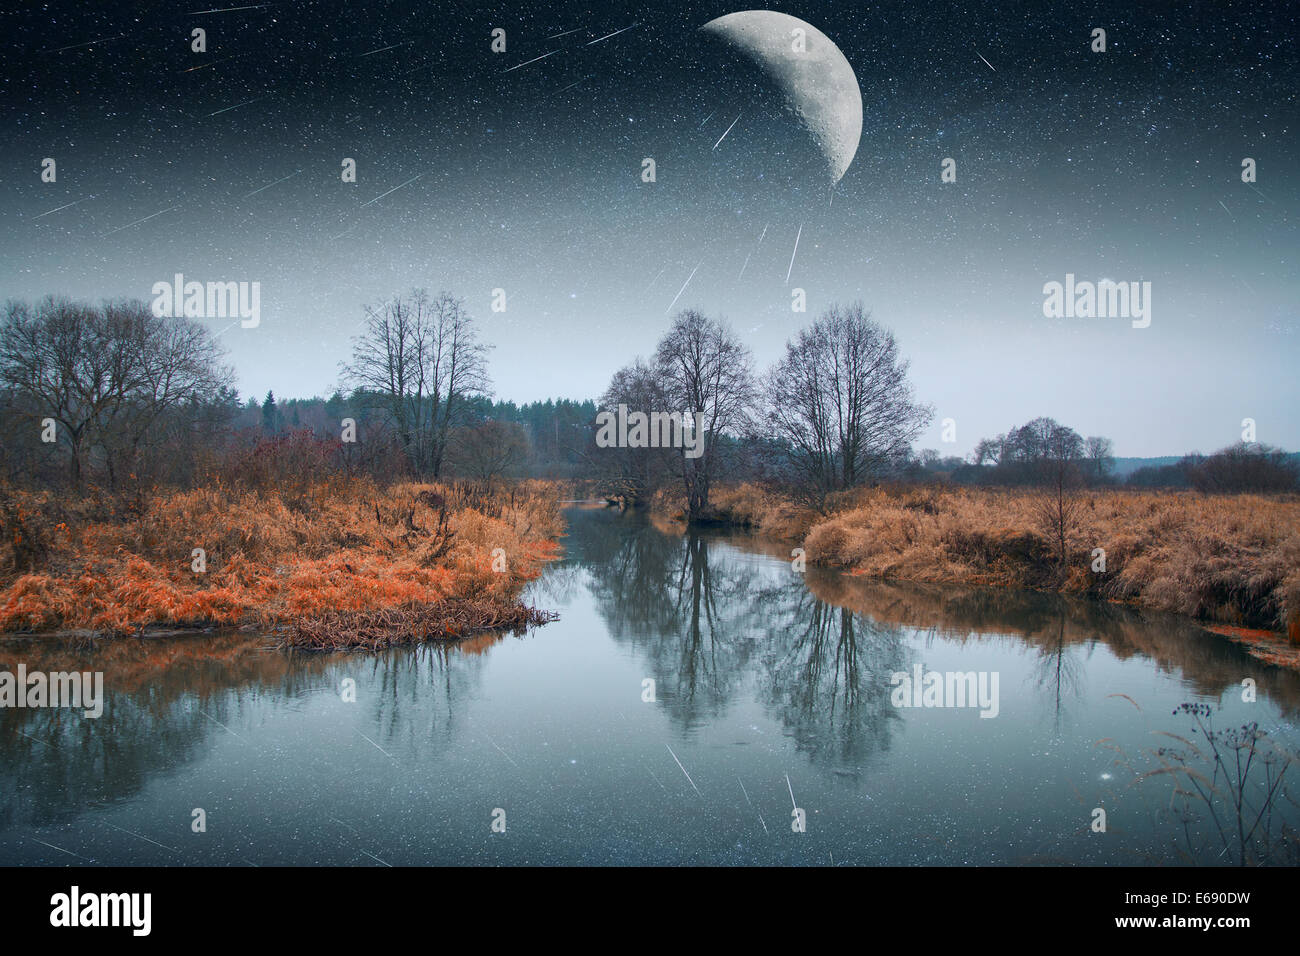 mystical landscape of the moon. Elements of this image furnished by NASA - Stock Image